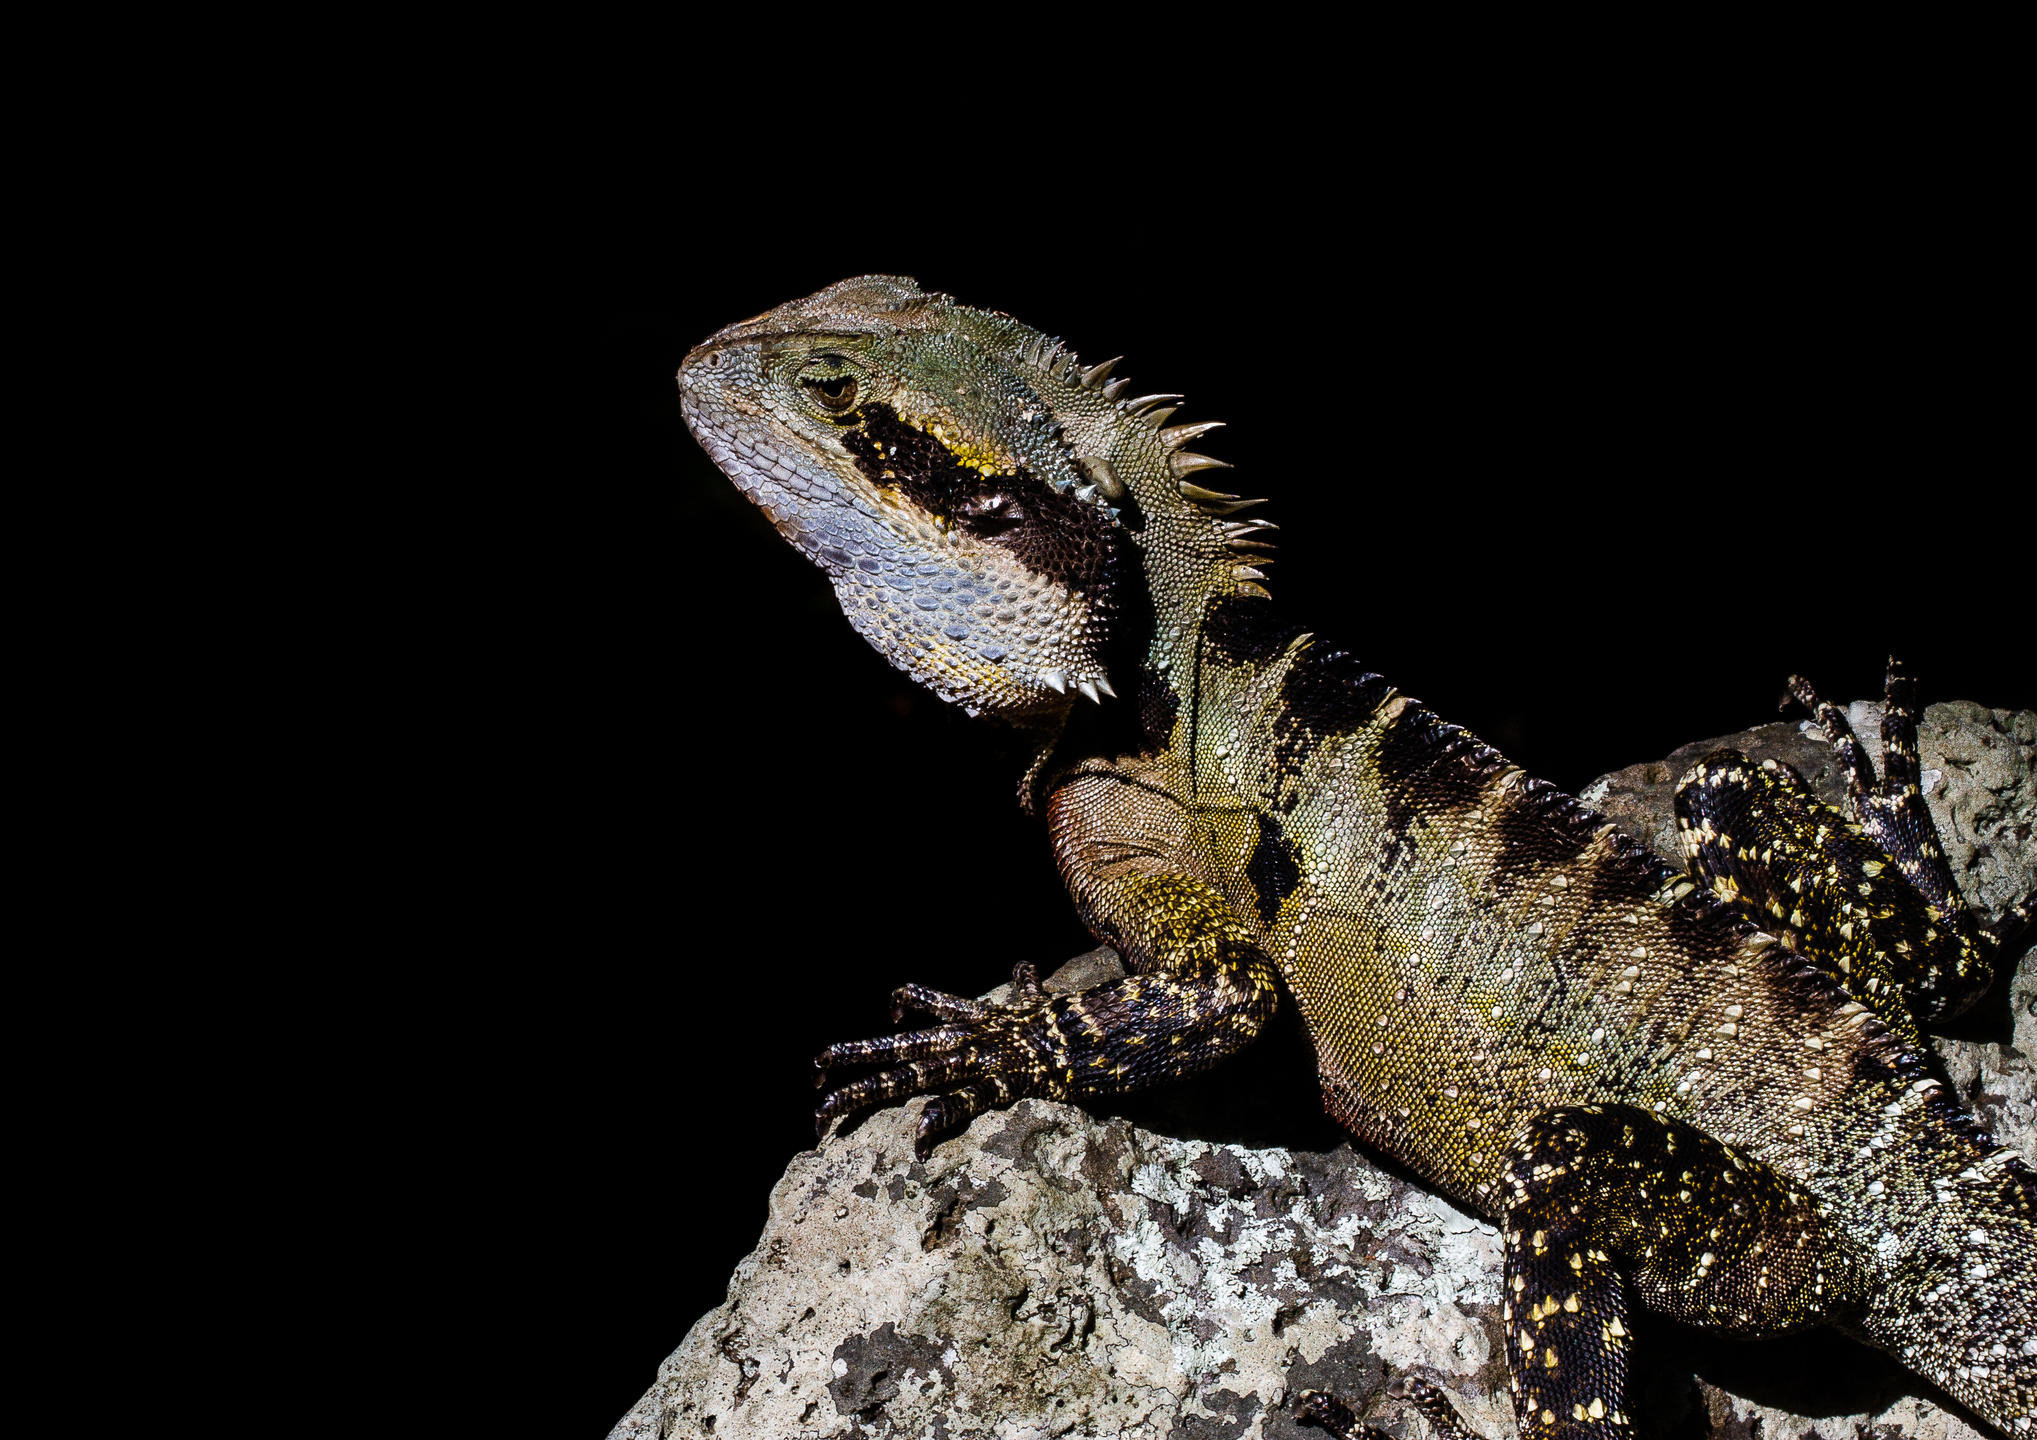 A Bearded Forest Dragon sitting on a rock